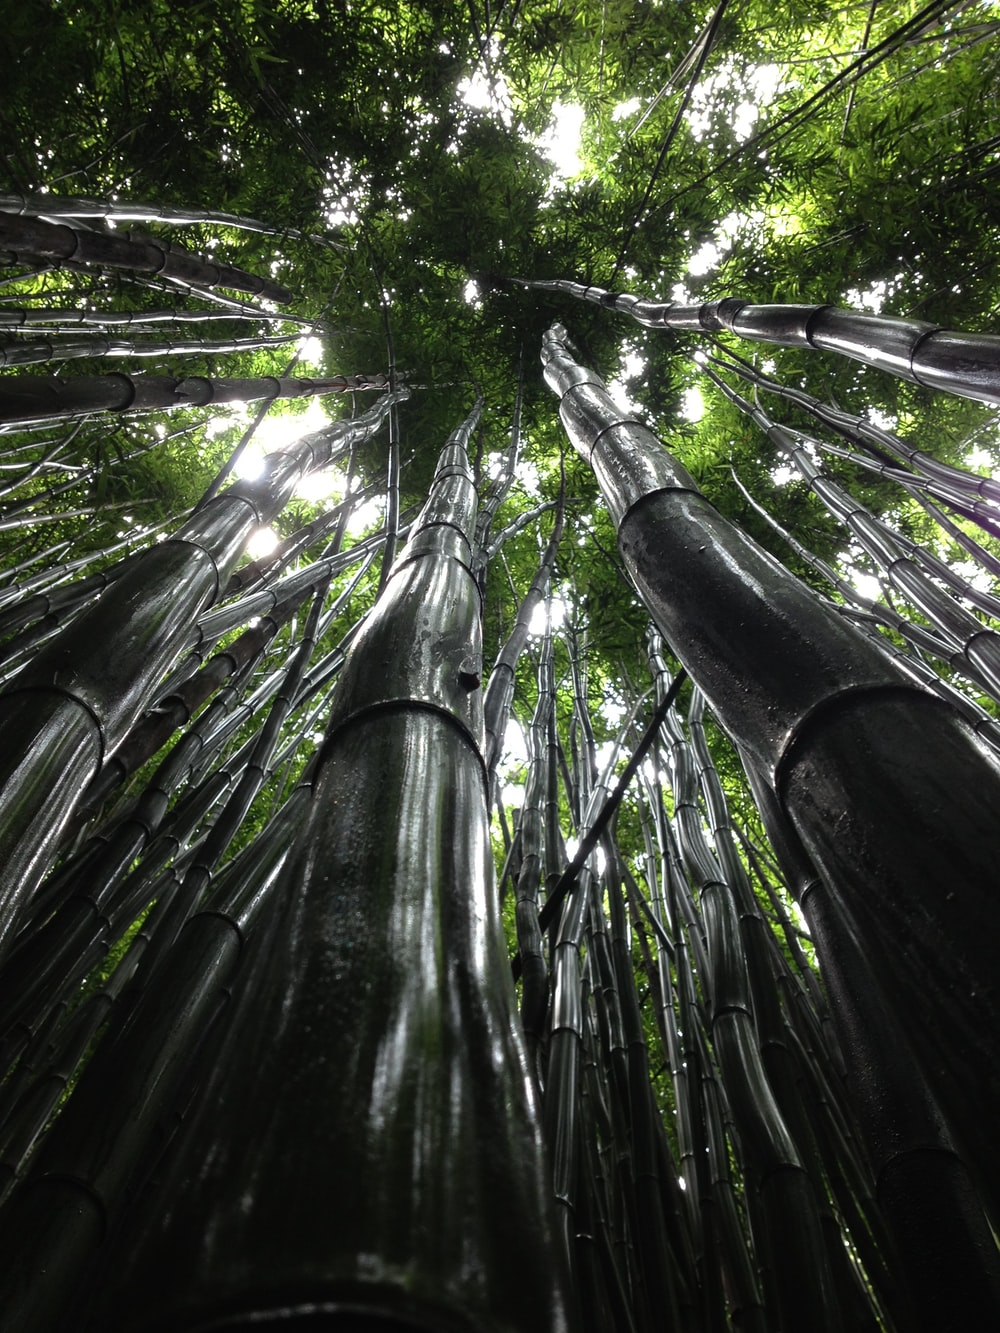 low angle view of green trees